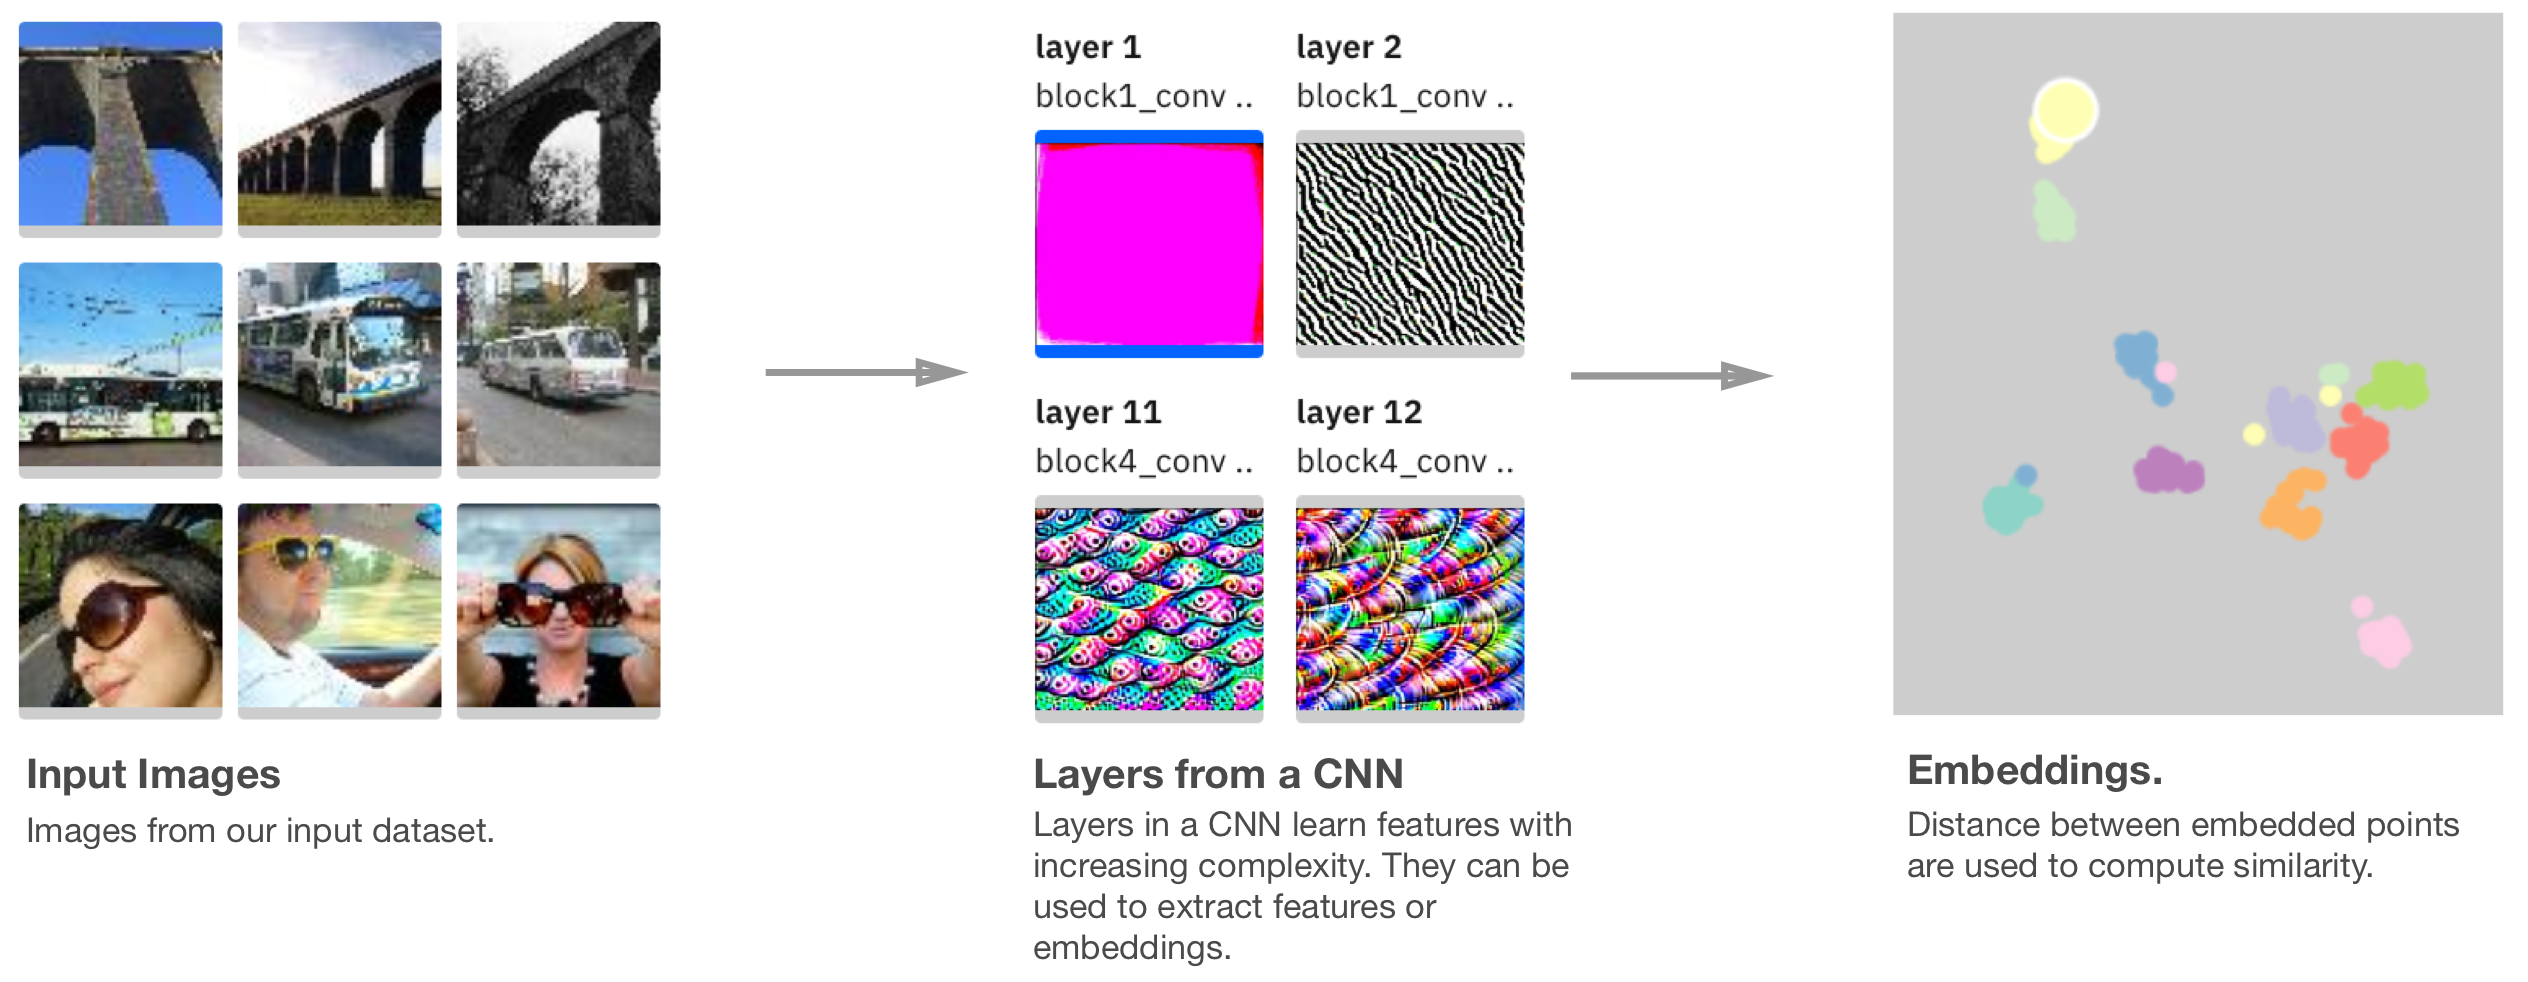 New research: Deep Learning for Image Analysis